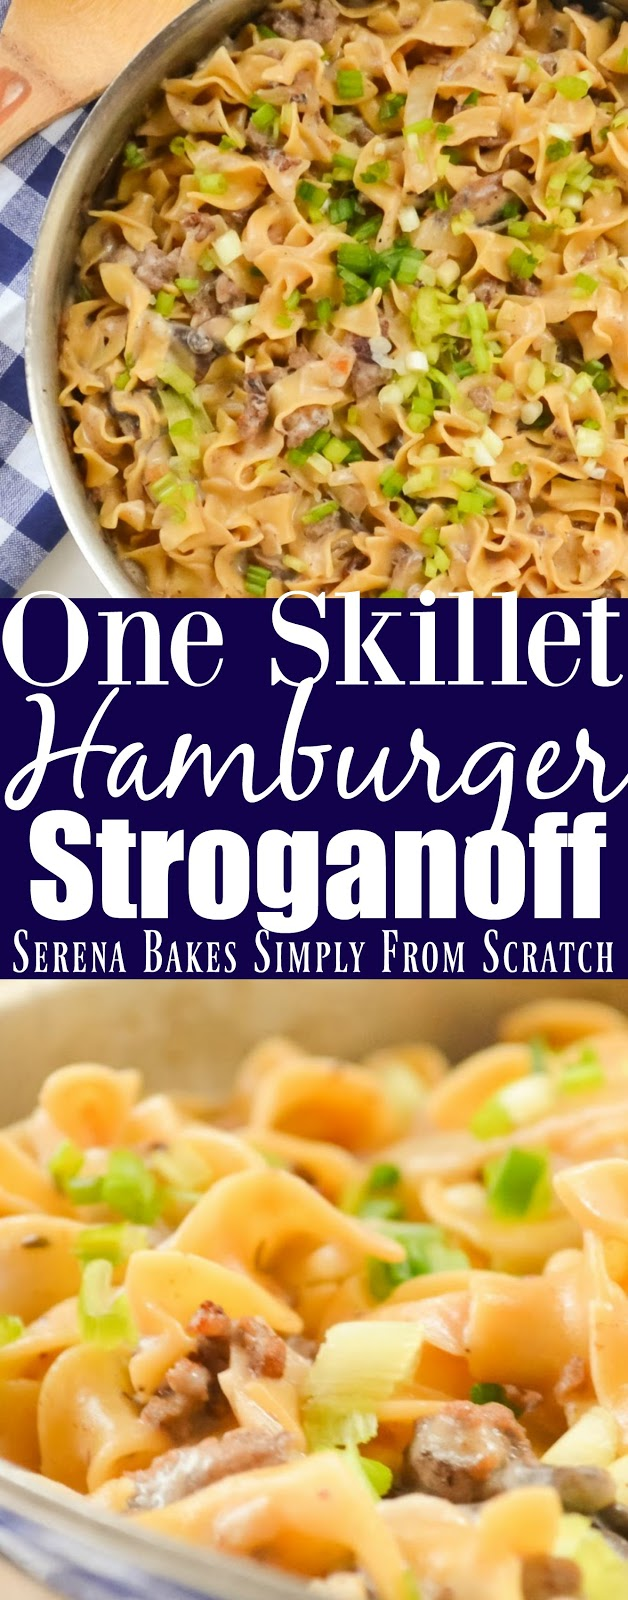 One Skillet Hamburger Beef Stroganoff Helper is an easy dinner in under 25 minutes.